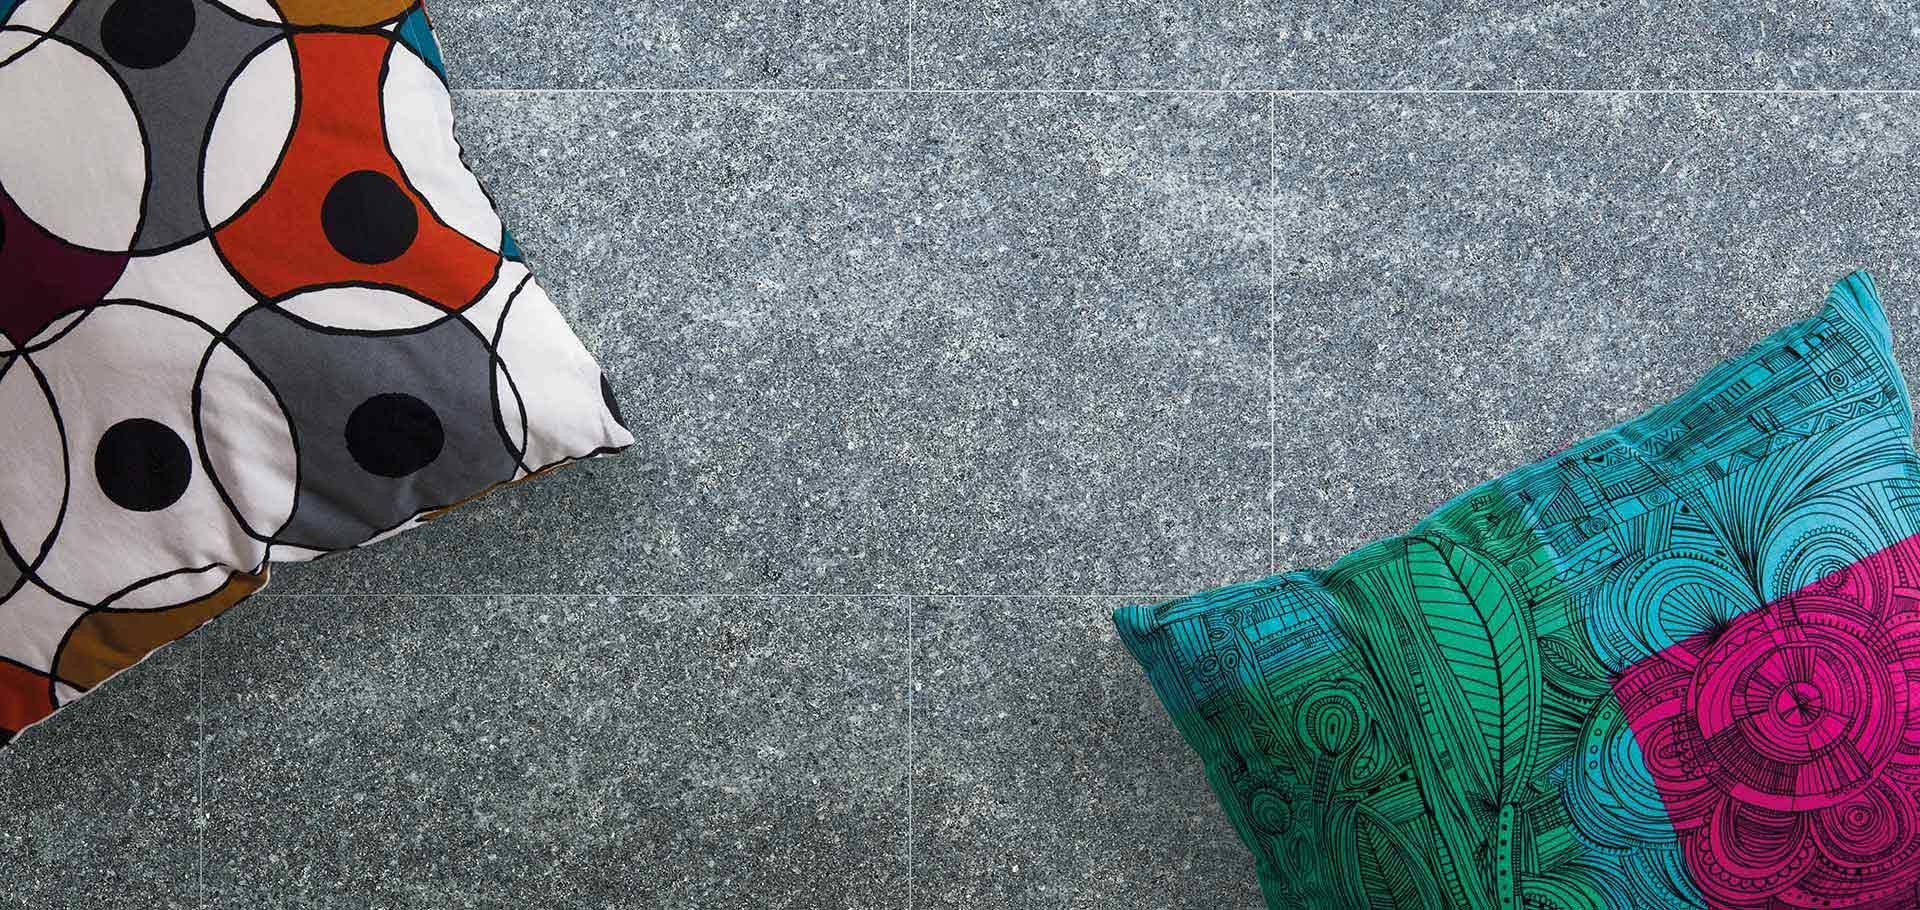 Stone tiles for indoor and outdoor